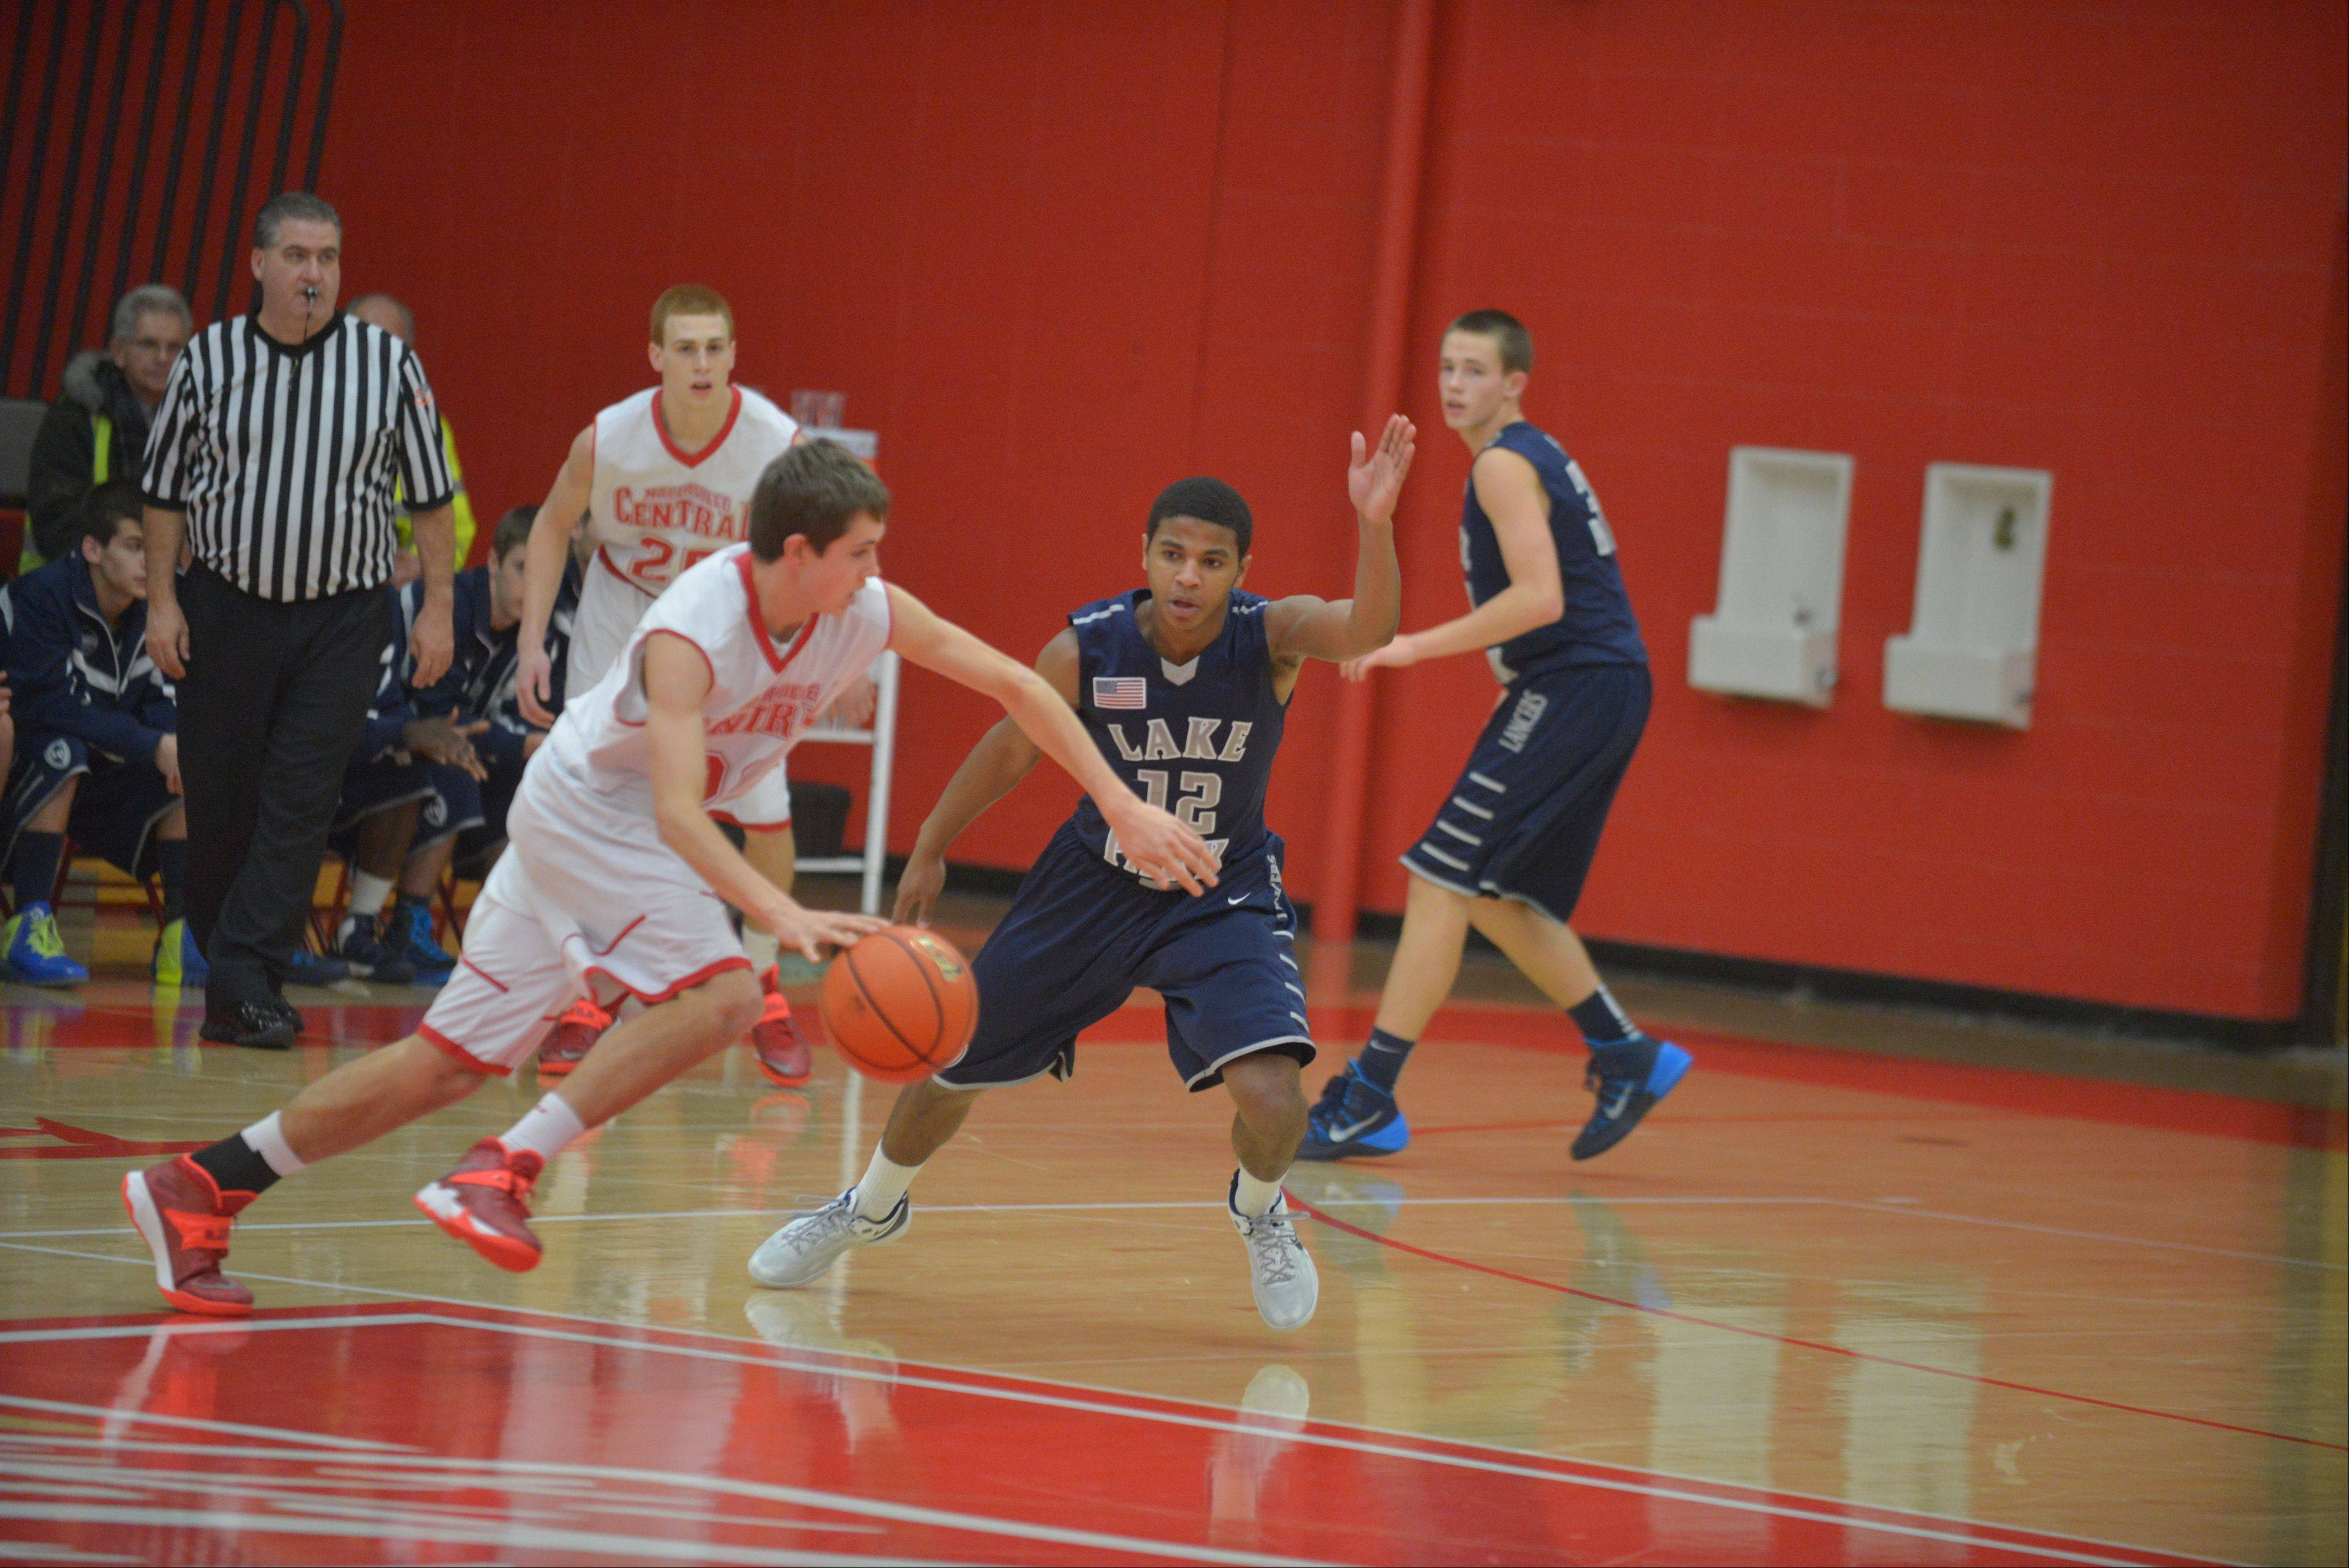 Images from the Naperville Central vs. Lake Park boys basketball game on Friday, Dec. 6.